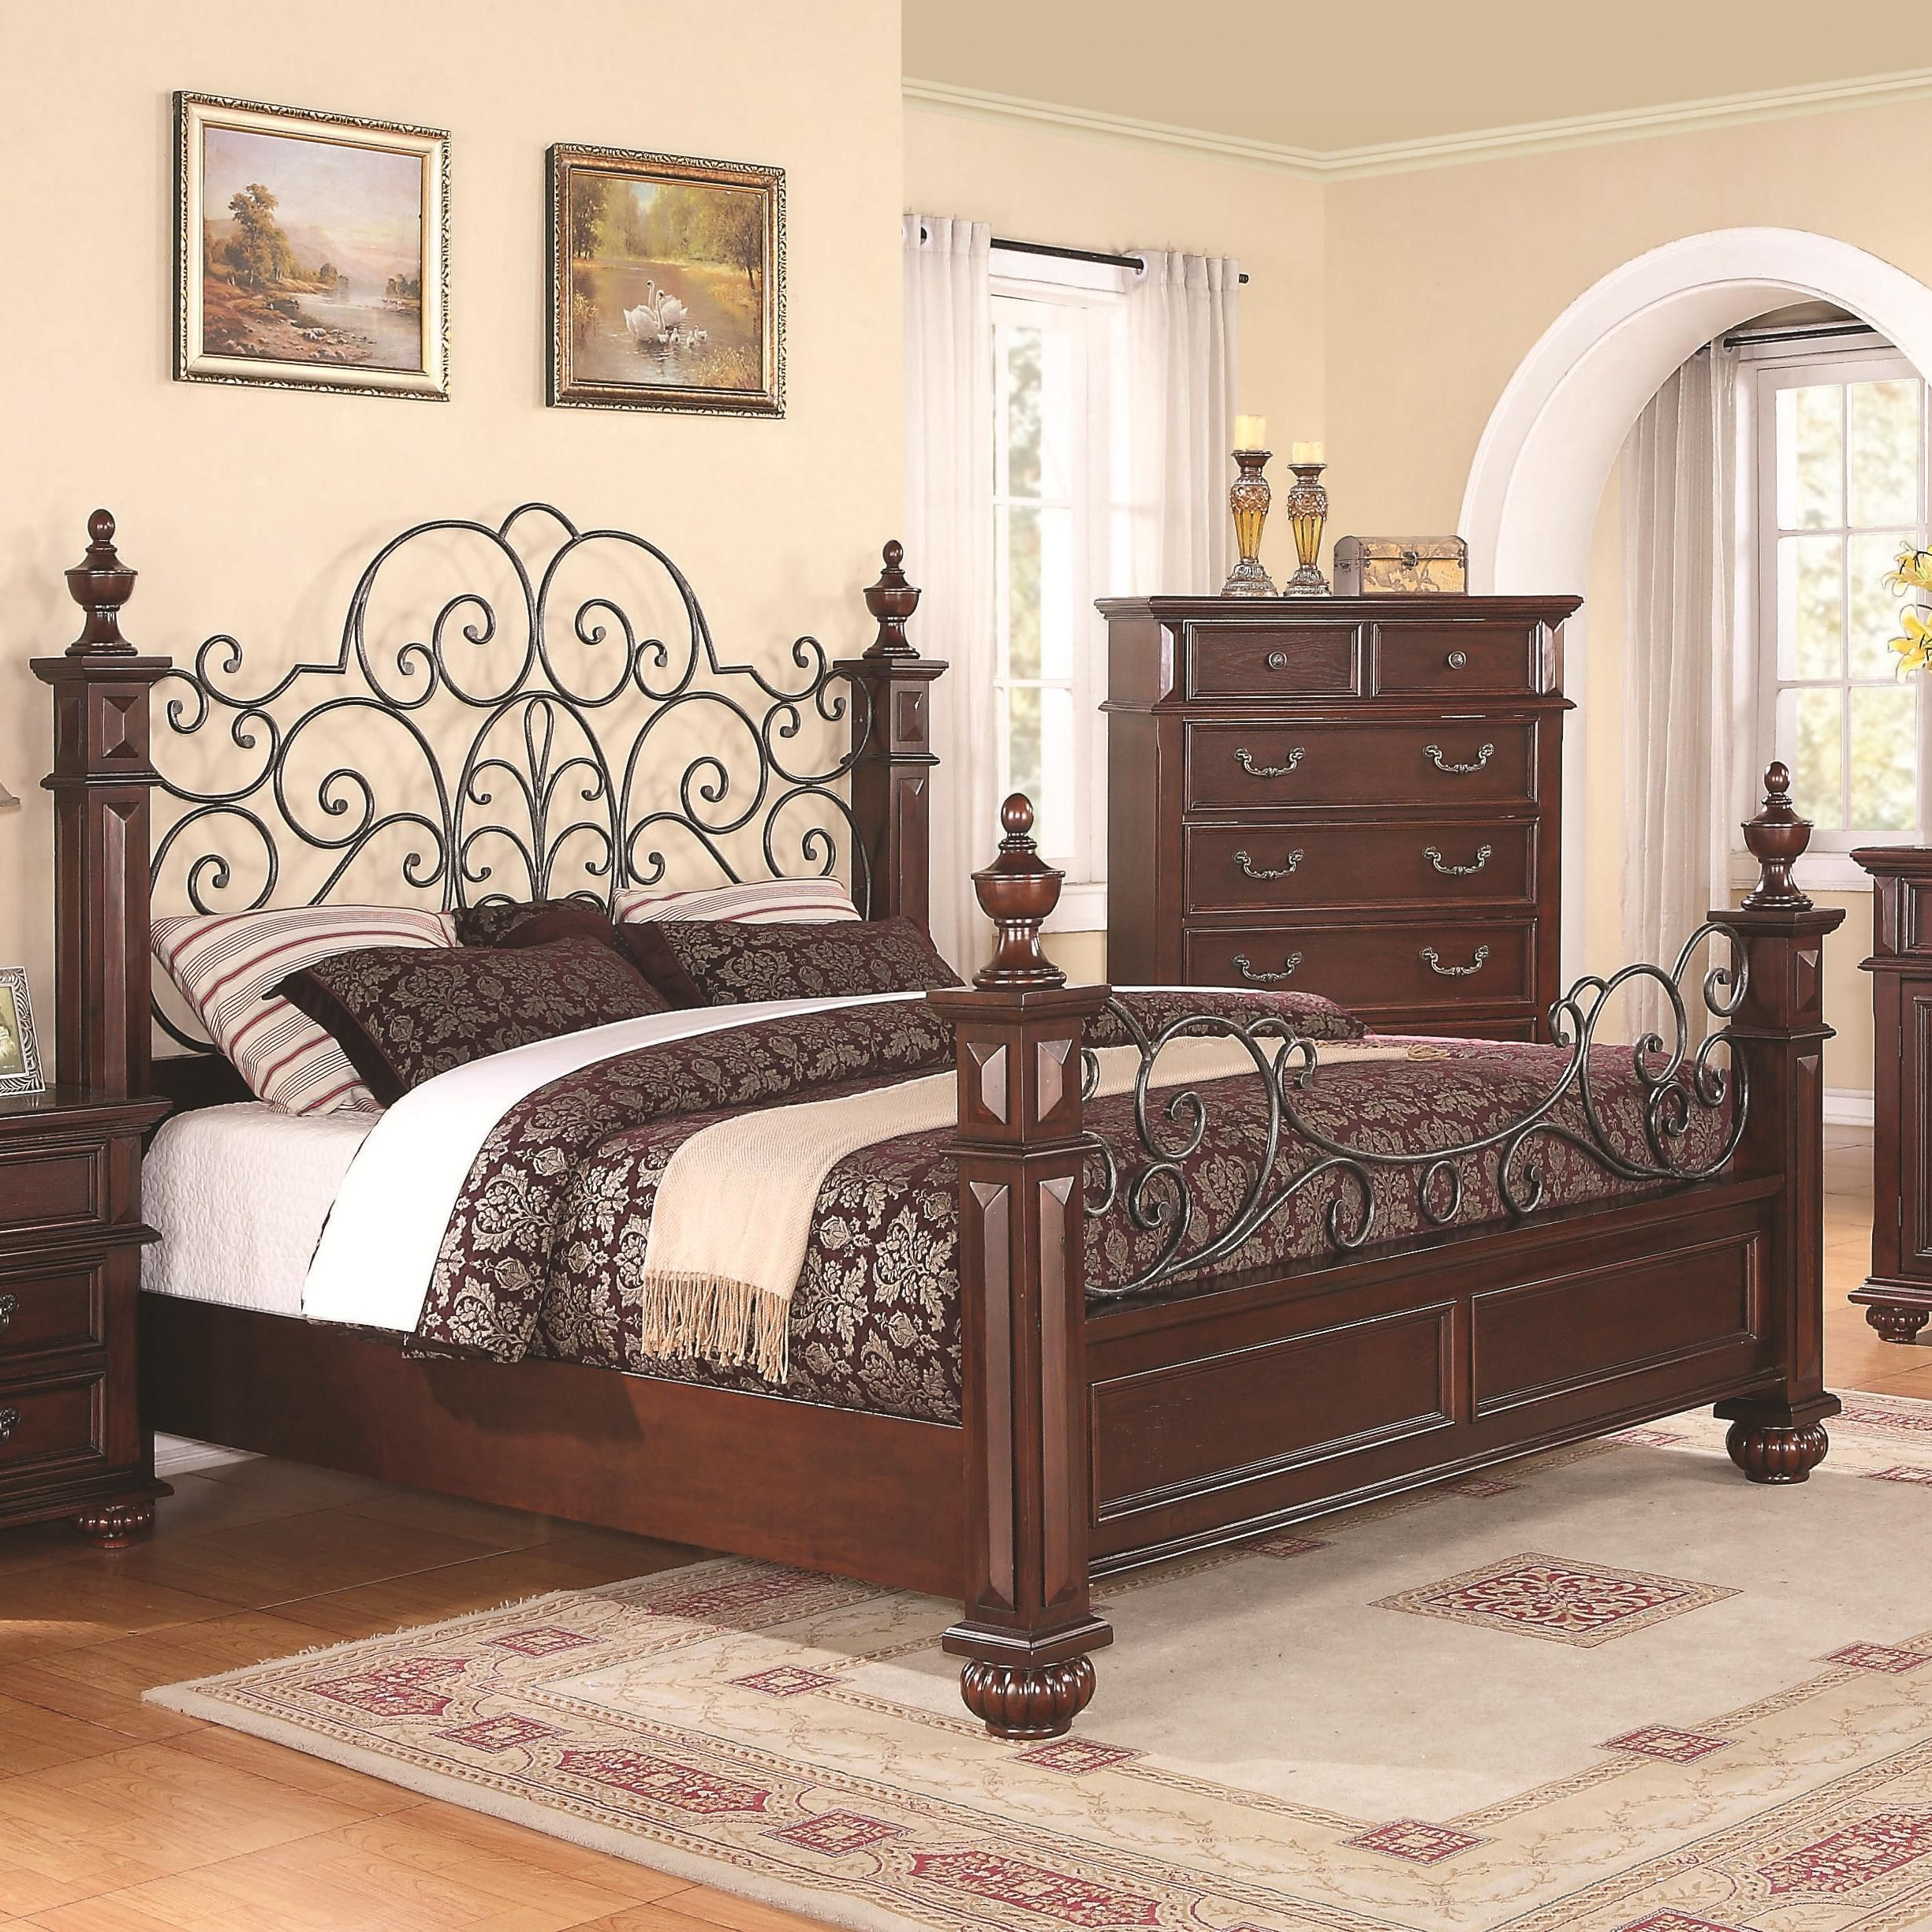 wrought iron king size bed dream home pinterest wrought iron